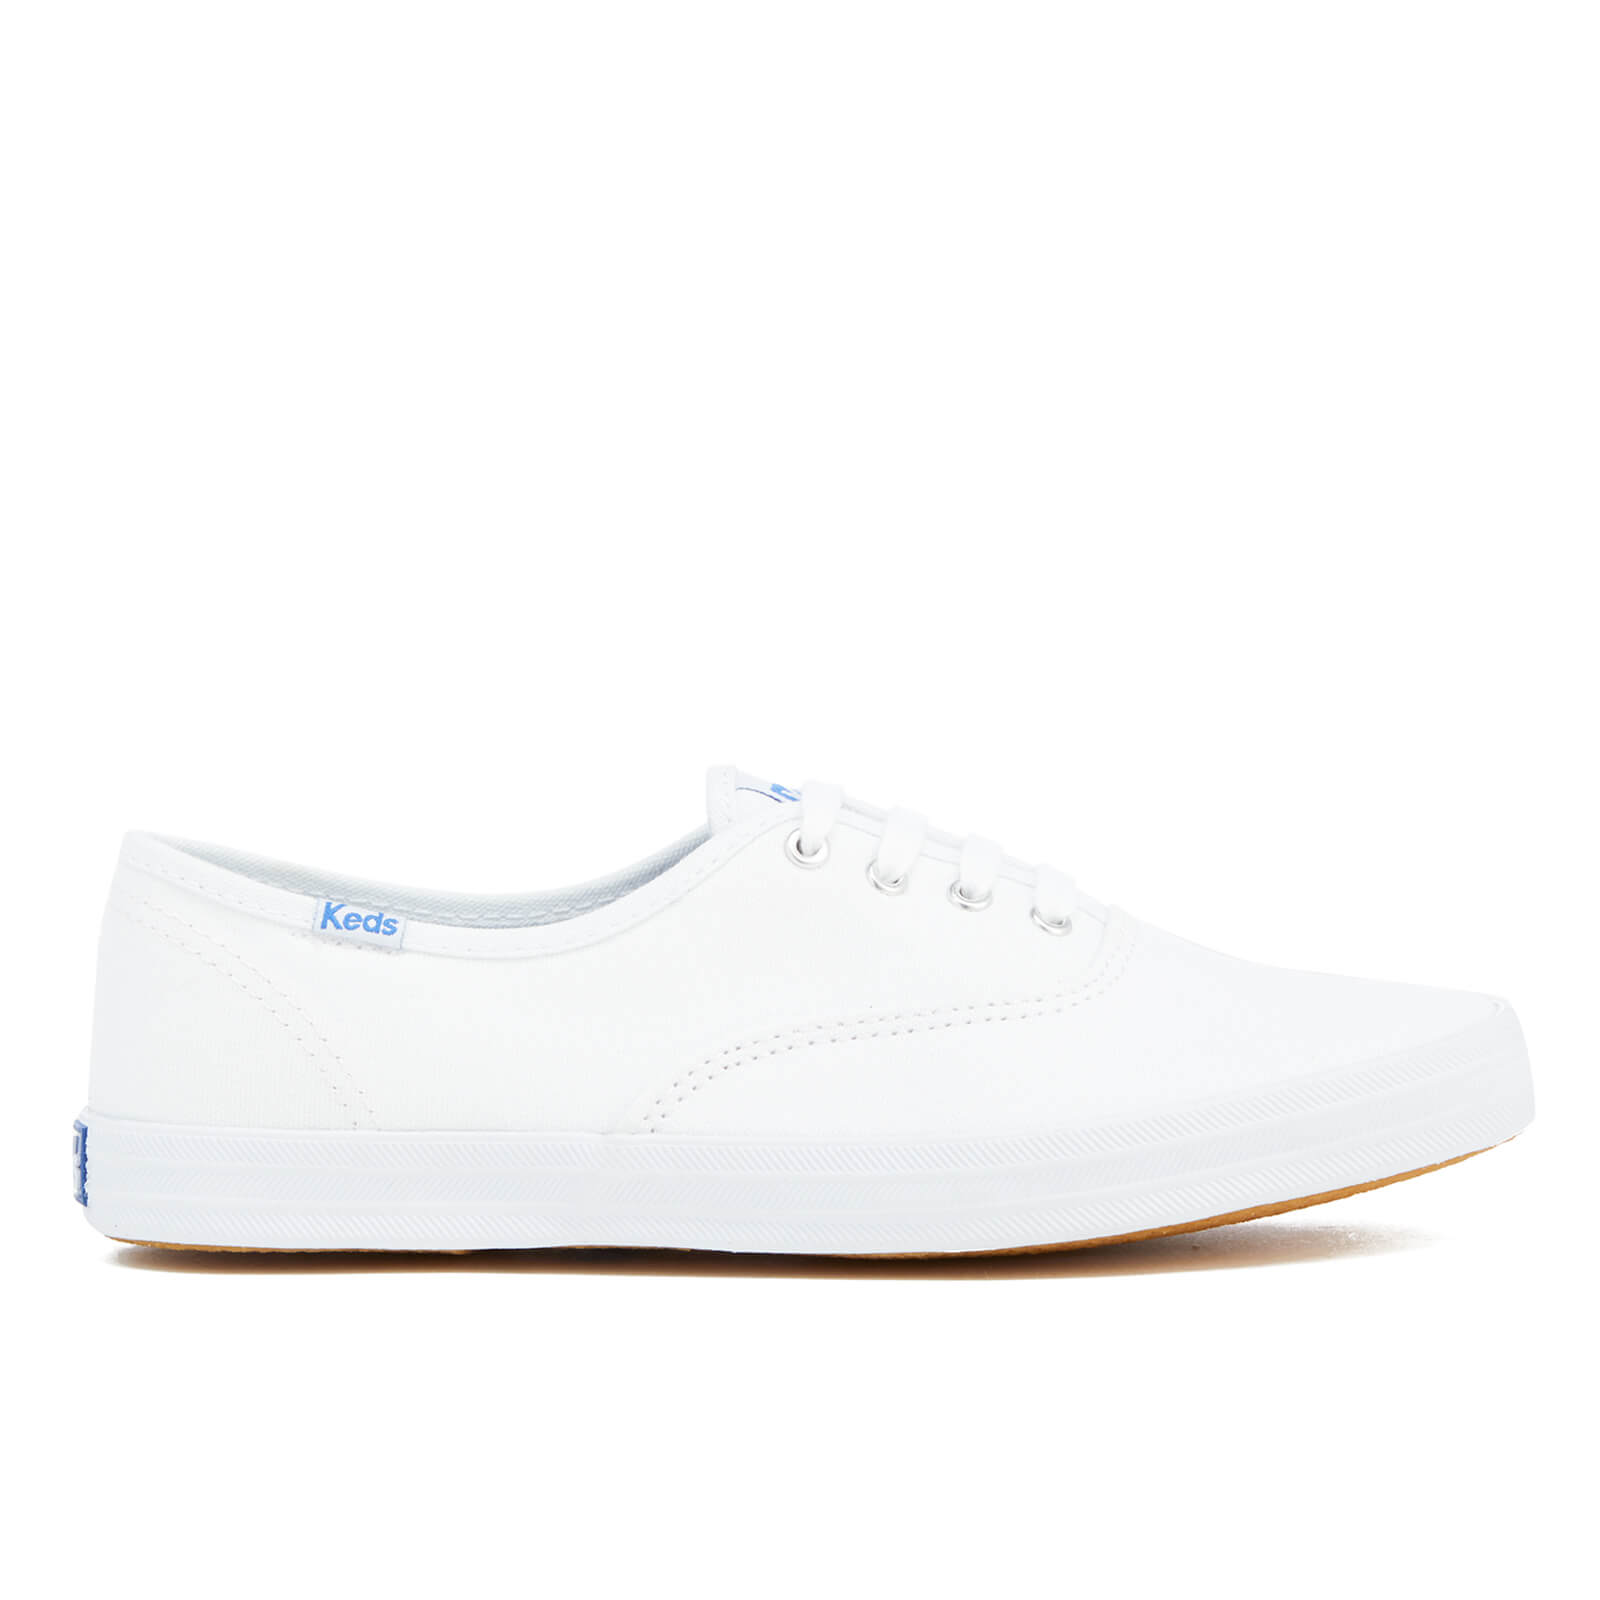 a04722e84d8 Keds Women s Champion CVO Core Canvas Trainers - White Womens Footwear